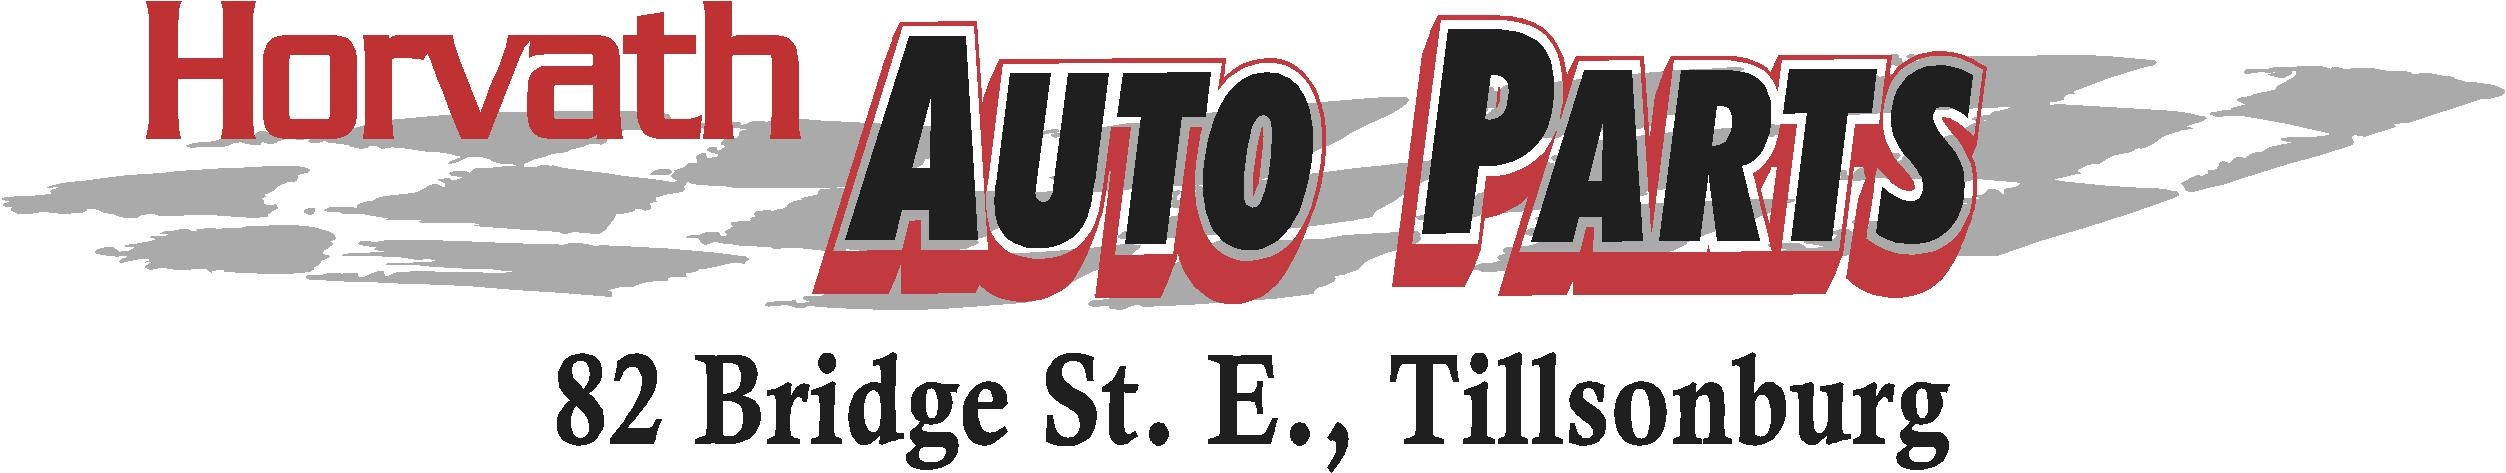 horvath-auto-parts-logo-1.jpg